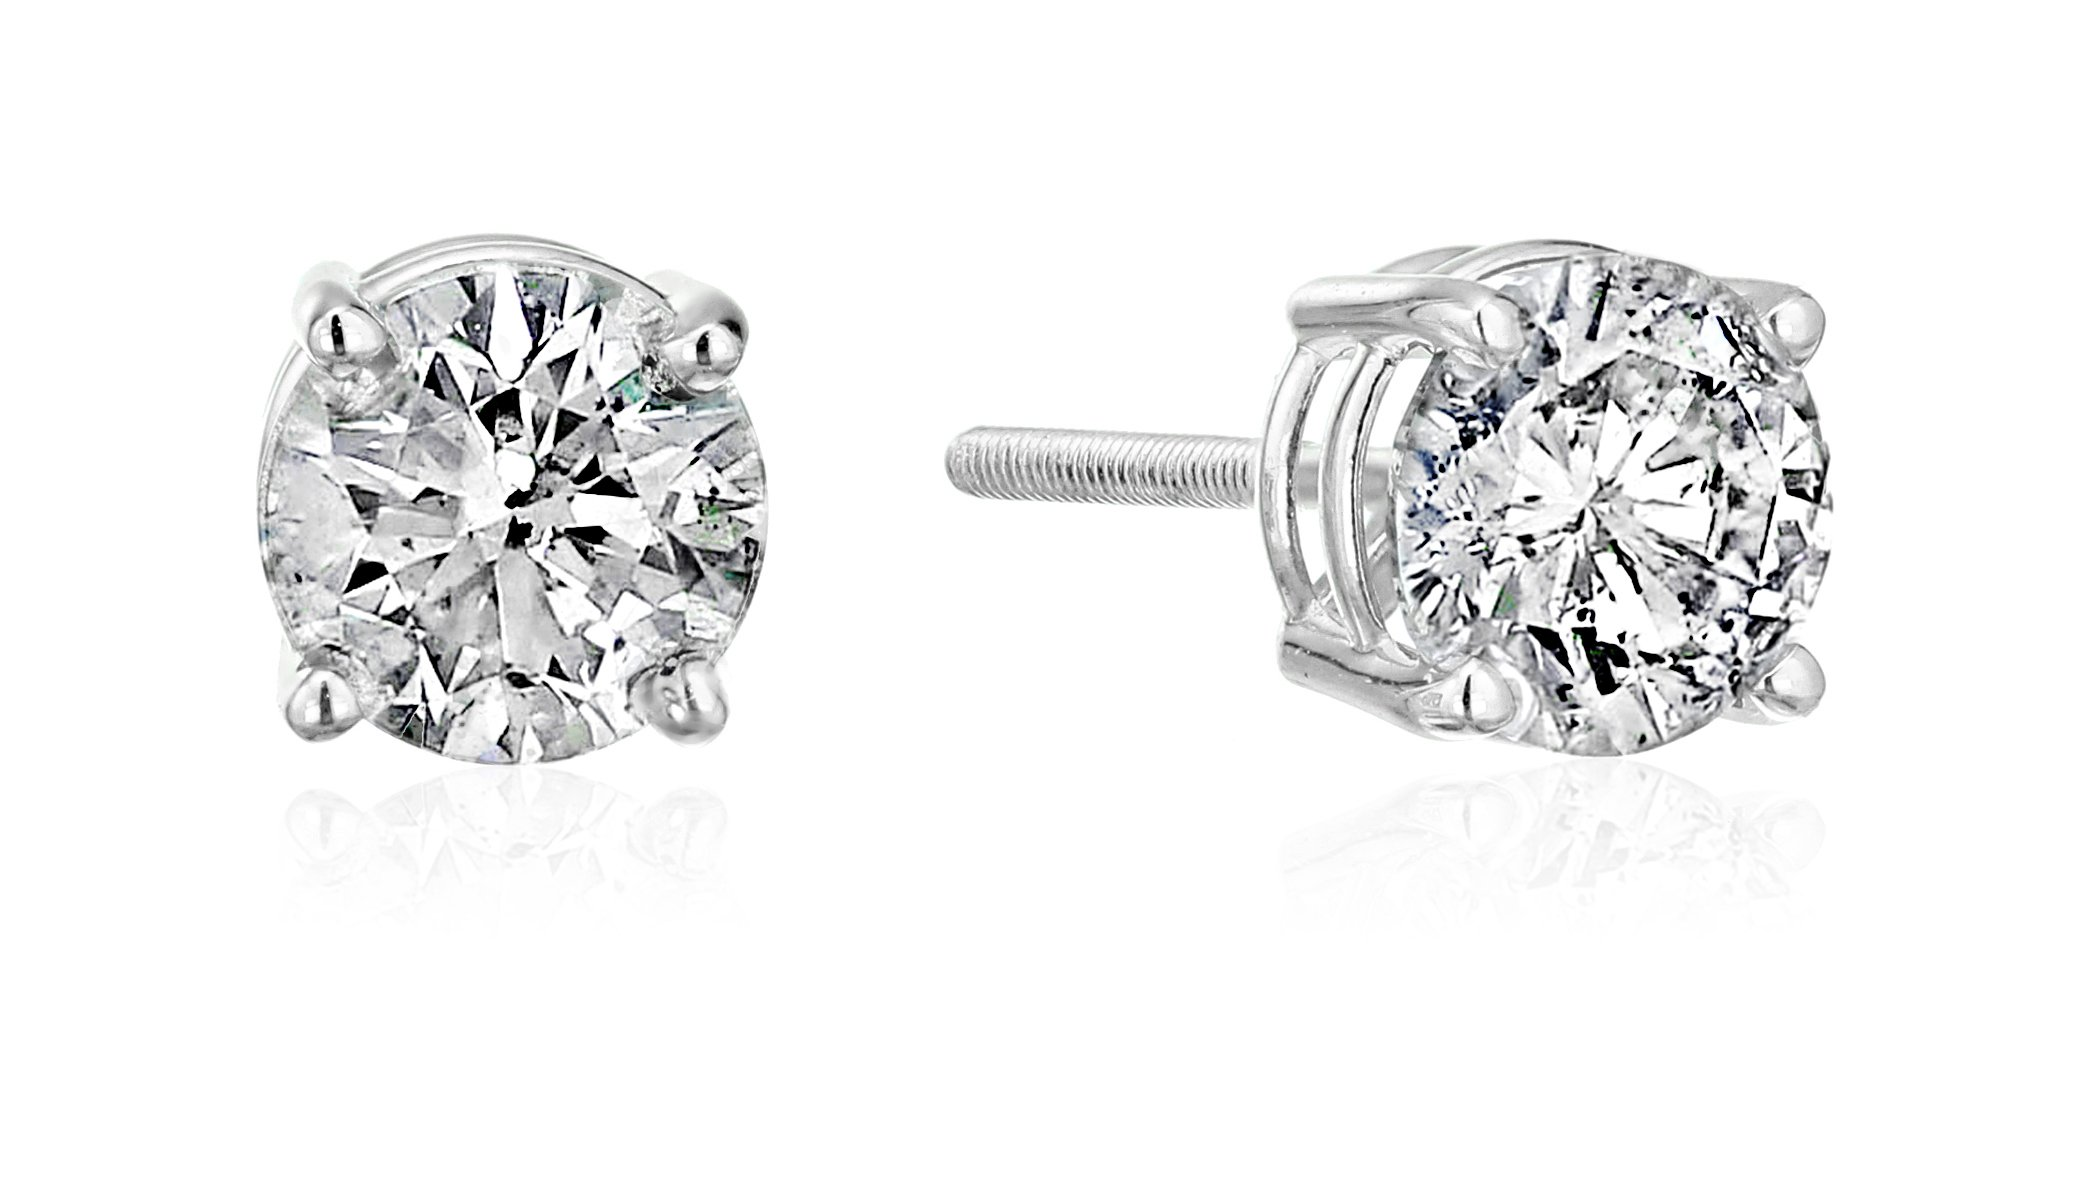 The Diamond Channel AGS Certified Diamond Earrings For Women in 14K Gold with Screw Back and Post Studs (J-K Color, I2 Clarity), Choice of Carat Weights